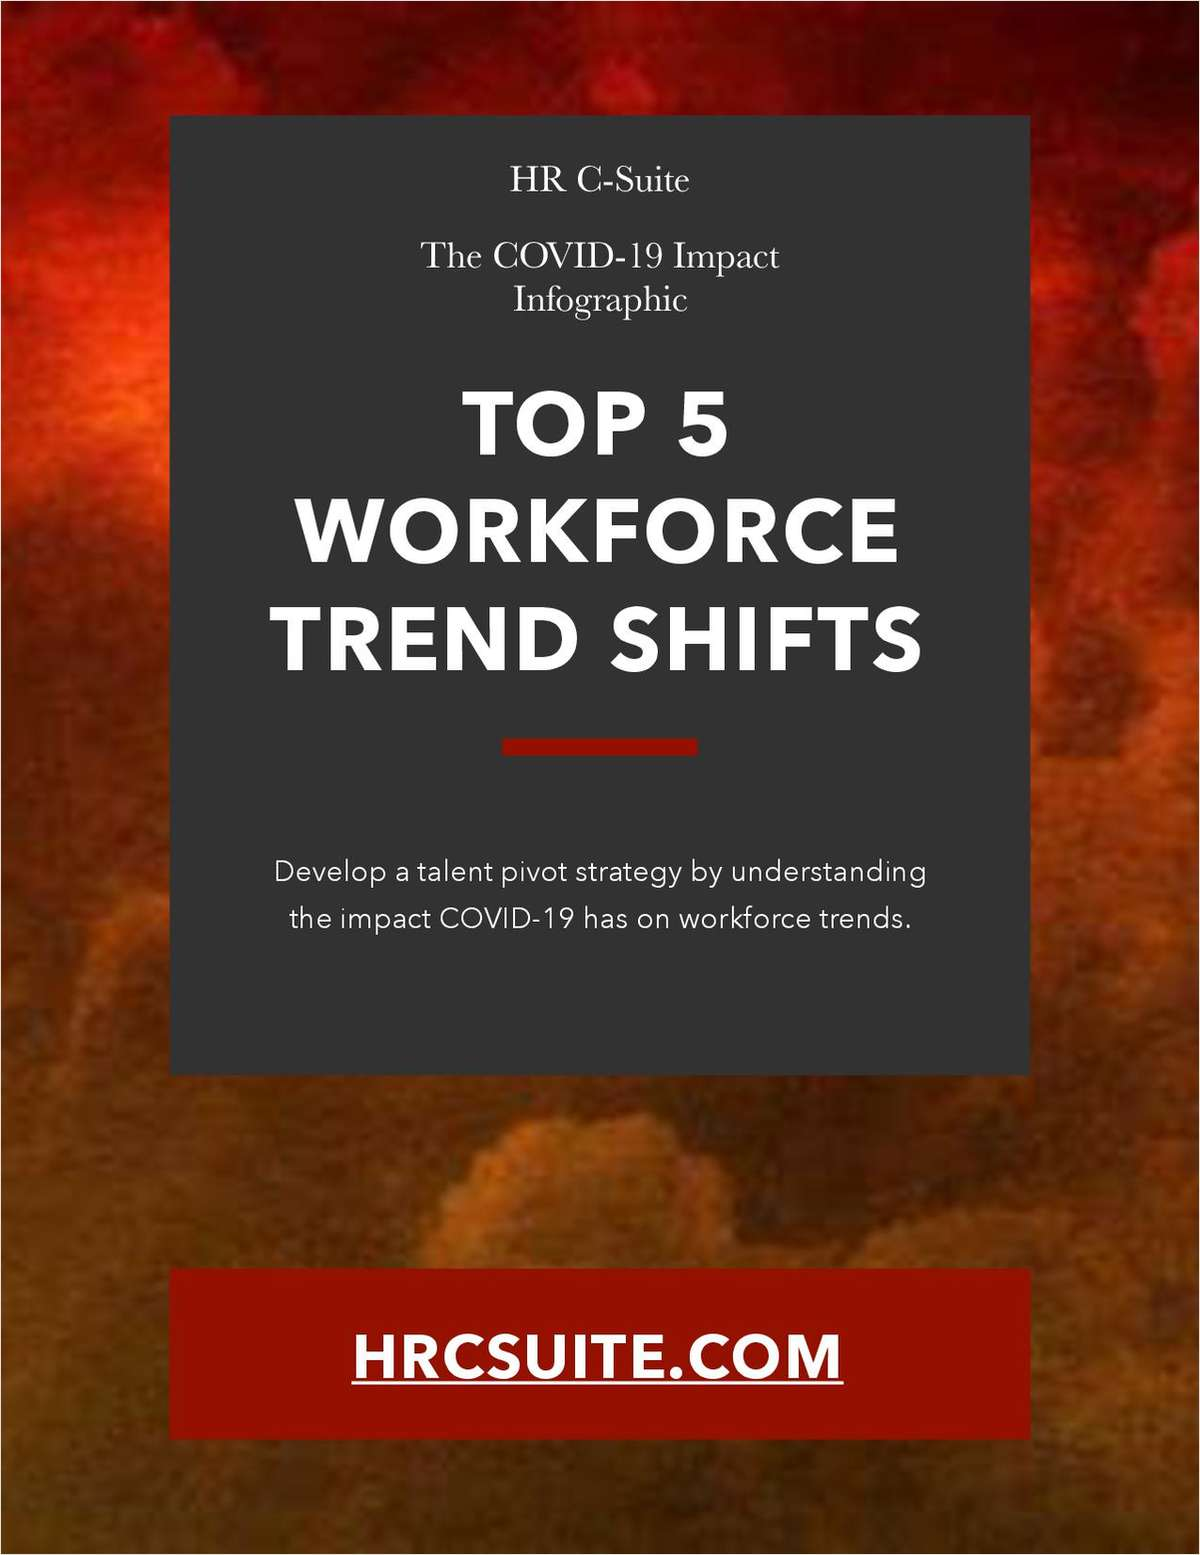 COVID-19 Impact: Top 5 Workforce Trends Shifts